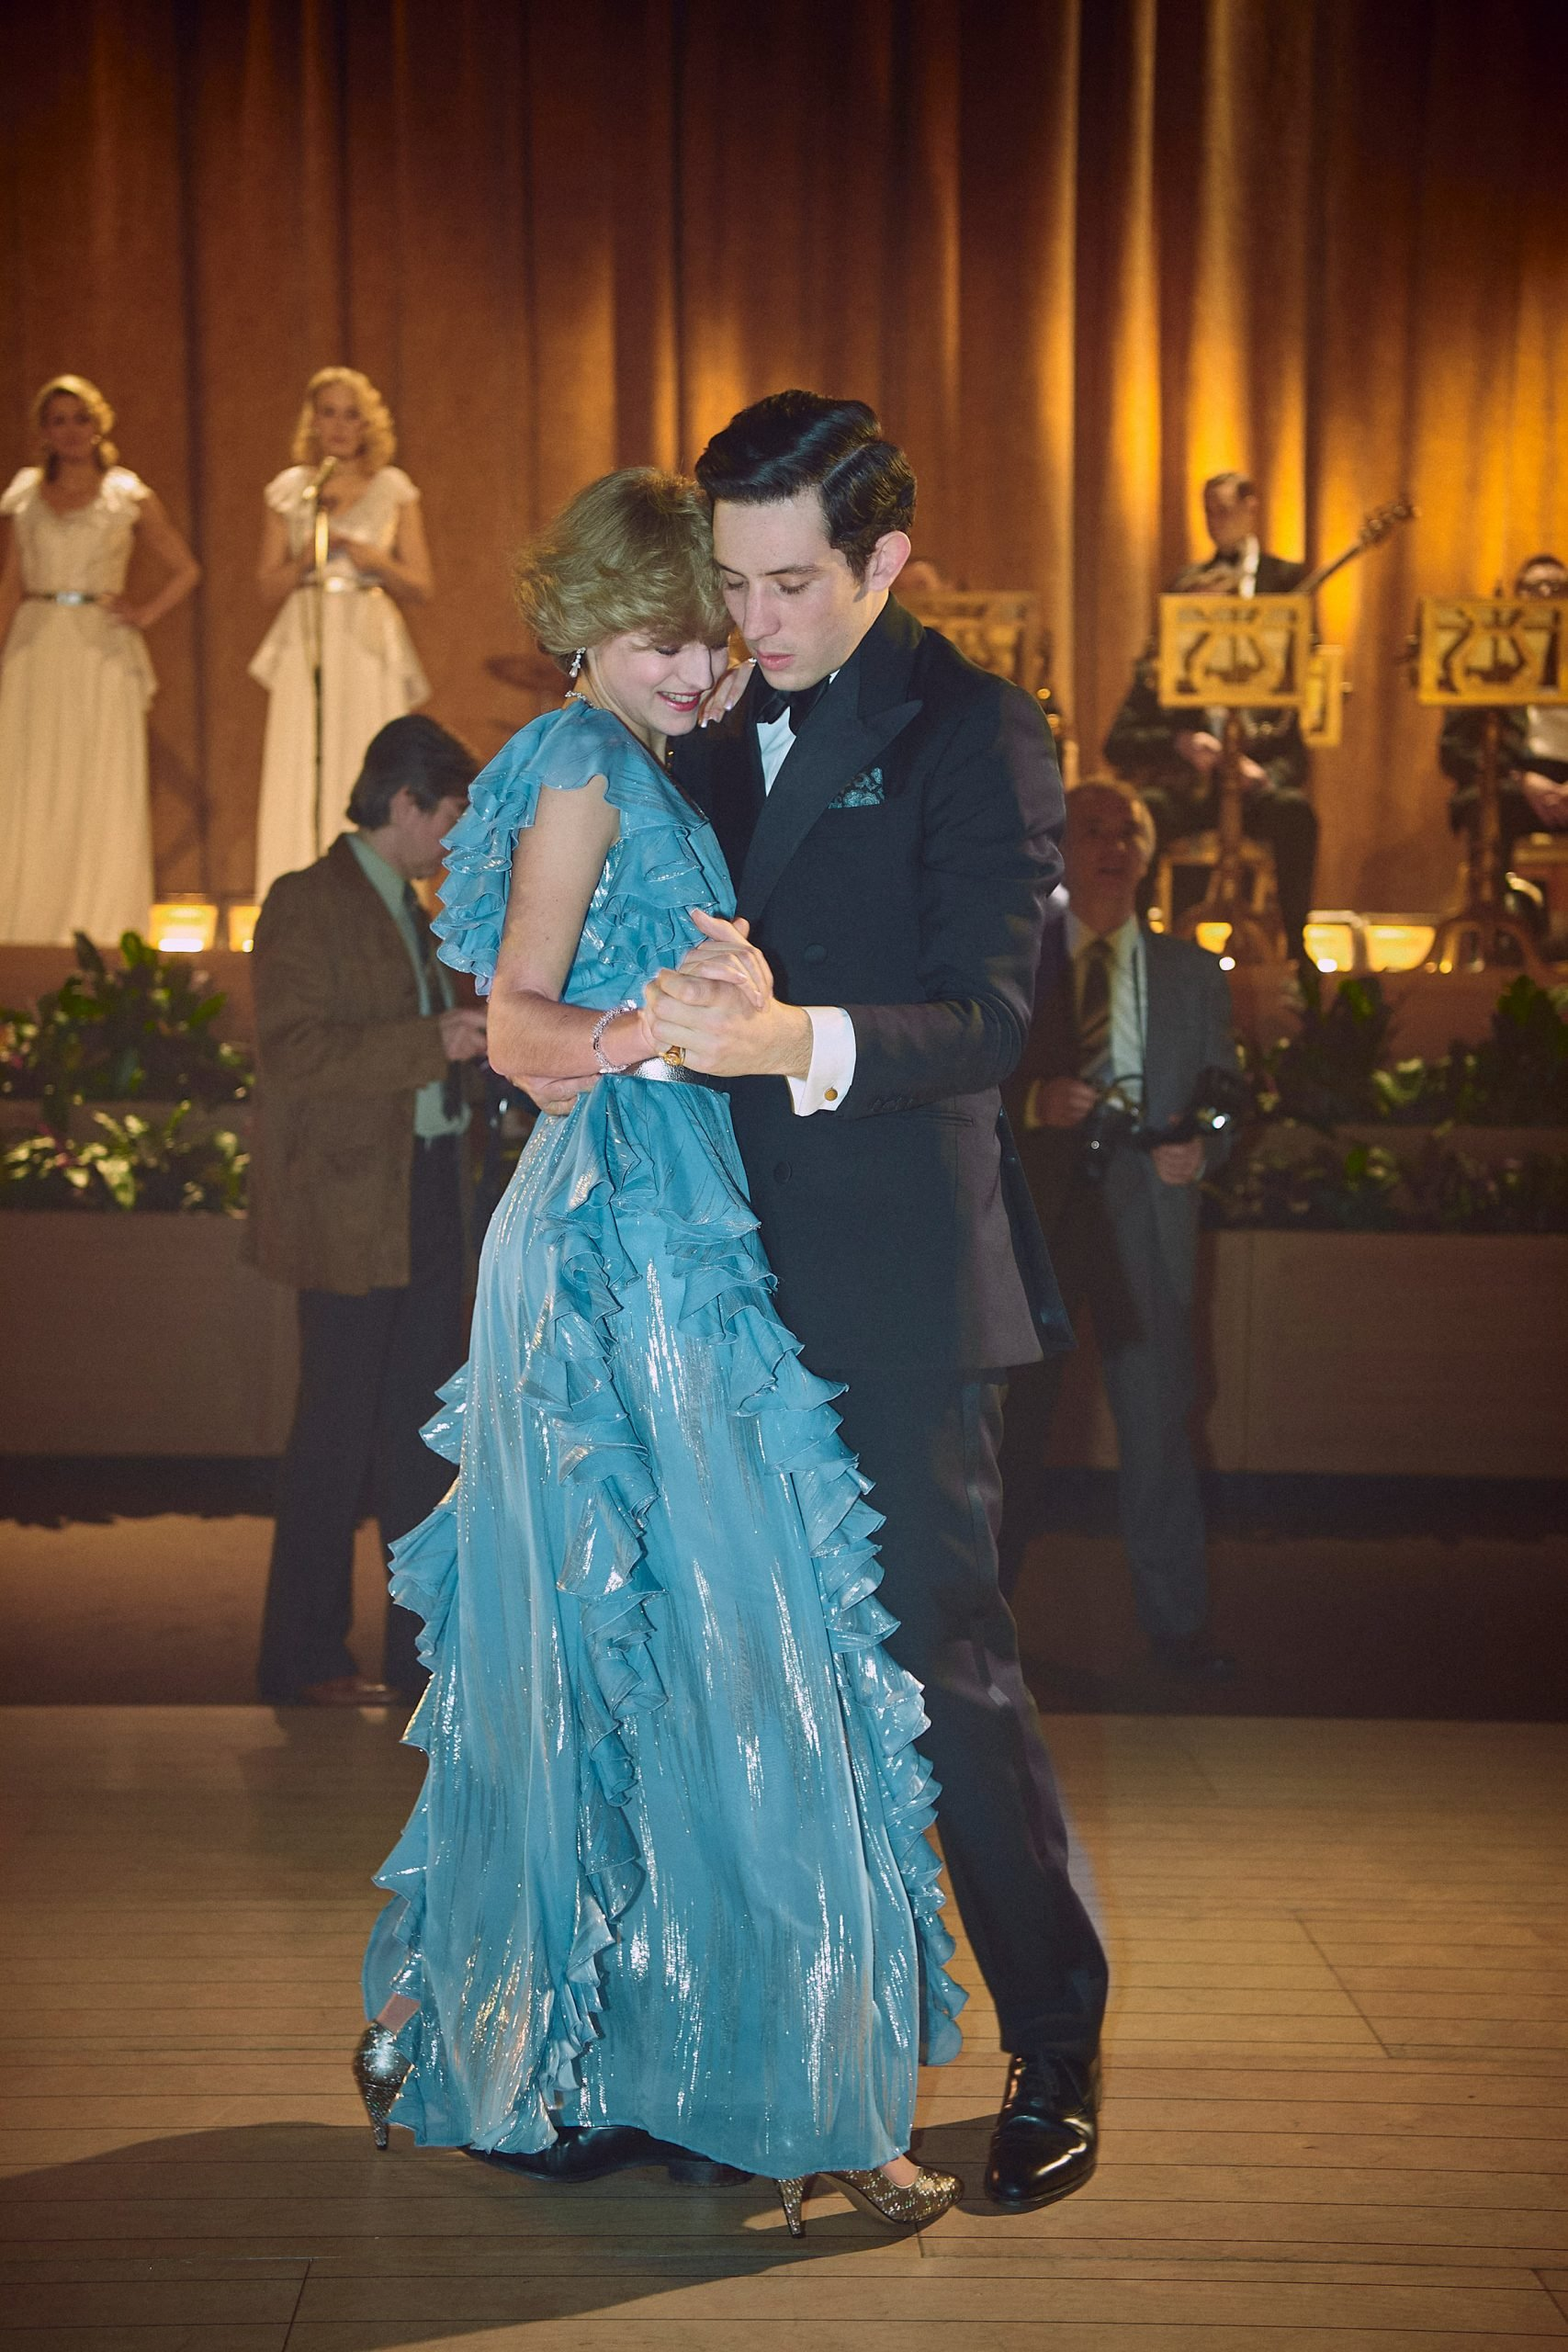 Josh O'Connor as Charles and Emma Corrin as Diana dancing in The Crown season 4